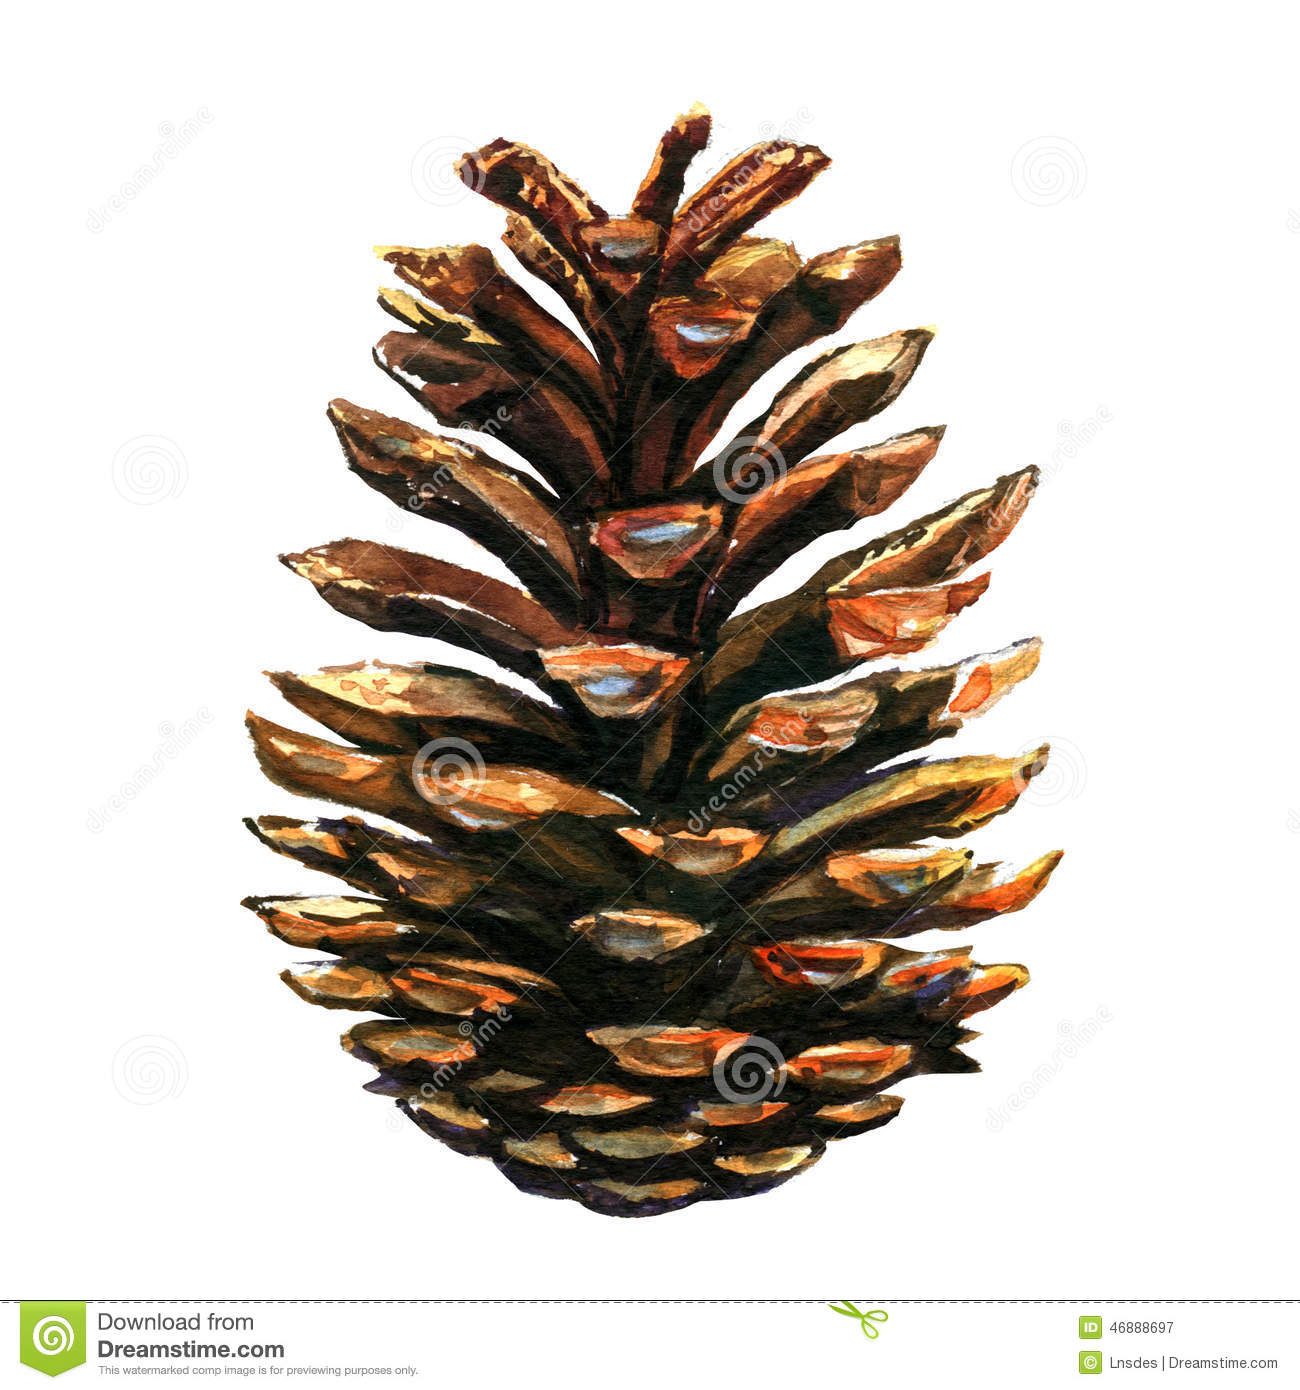 Pinecone on white background